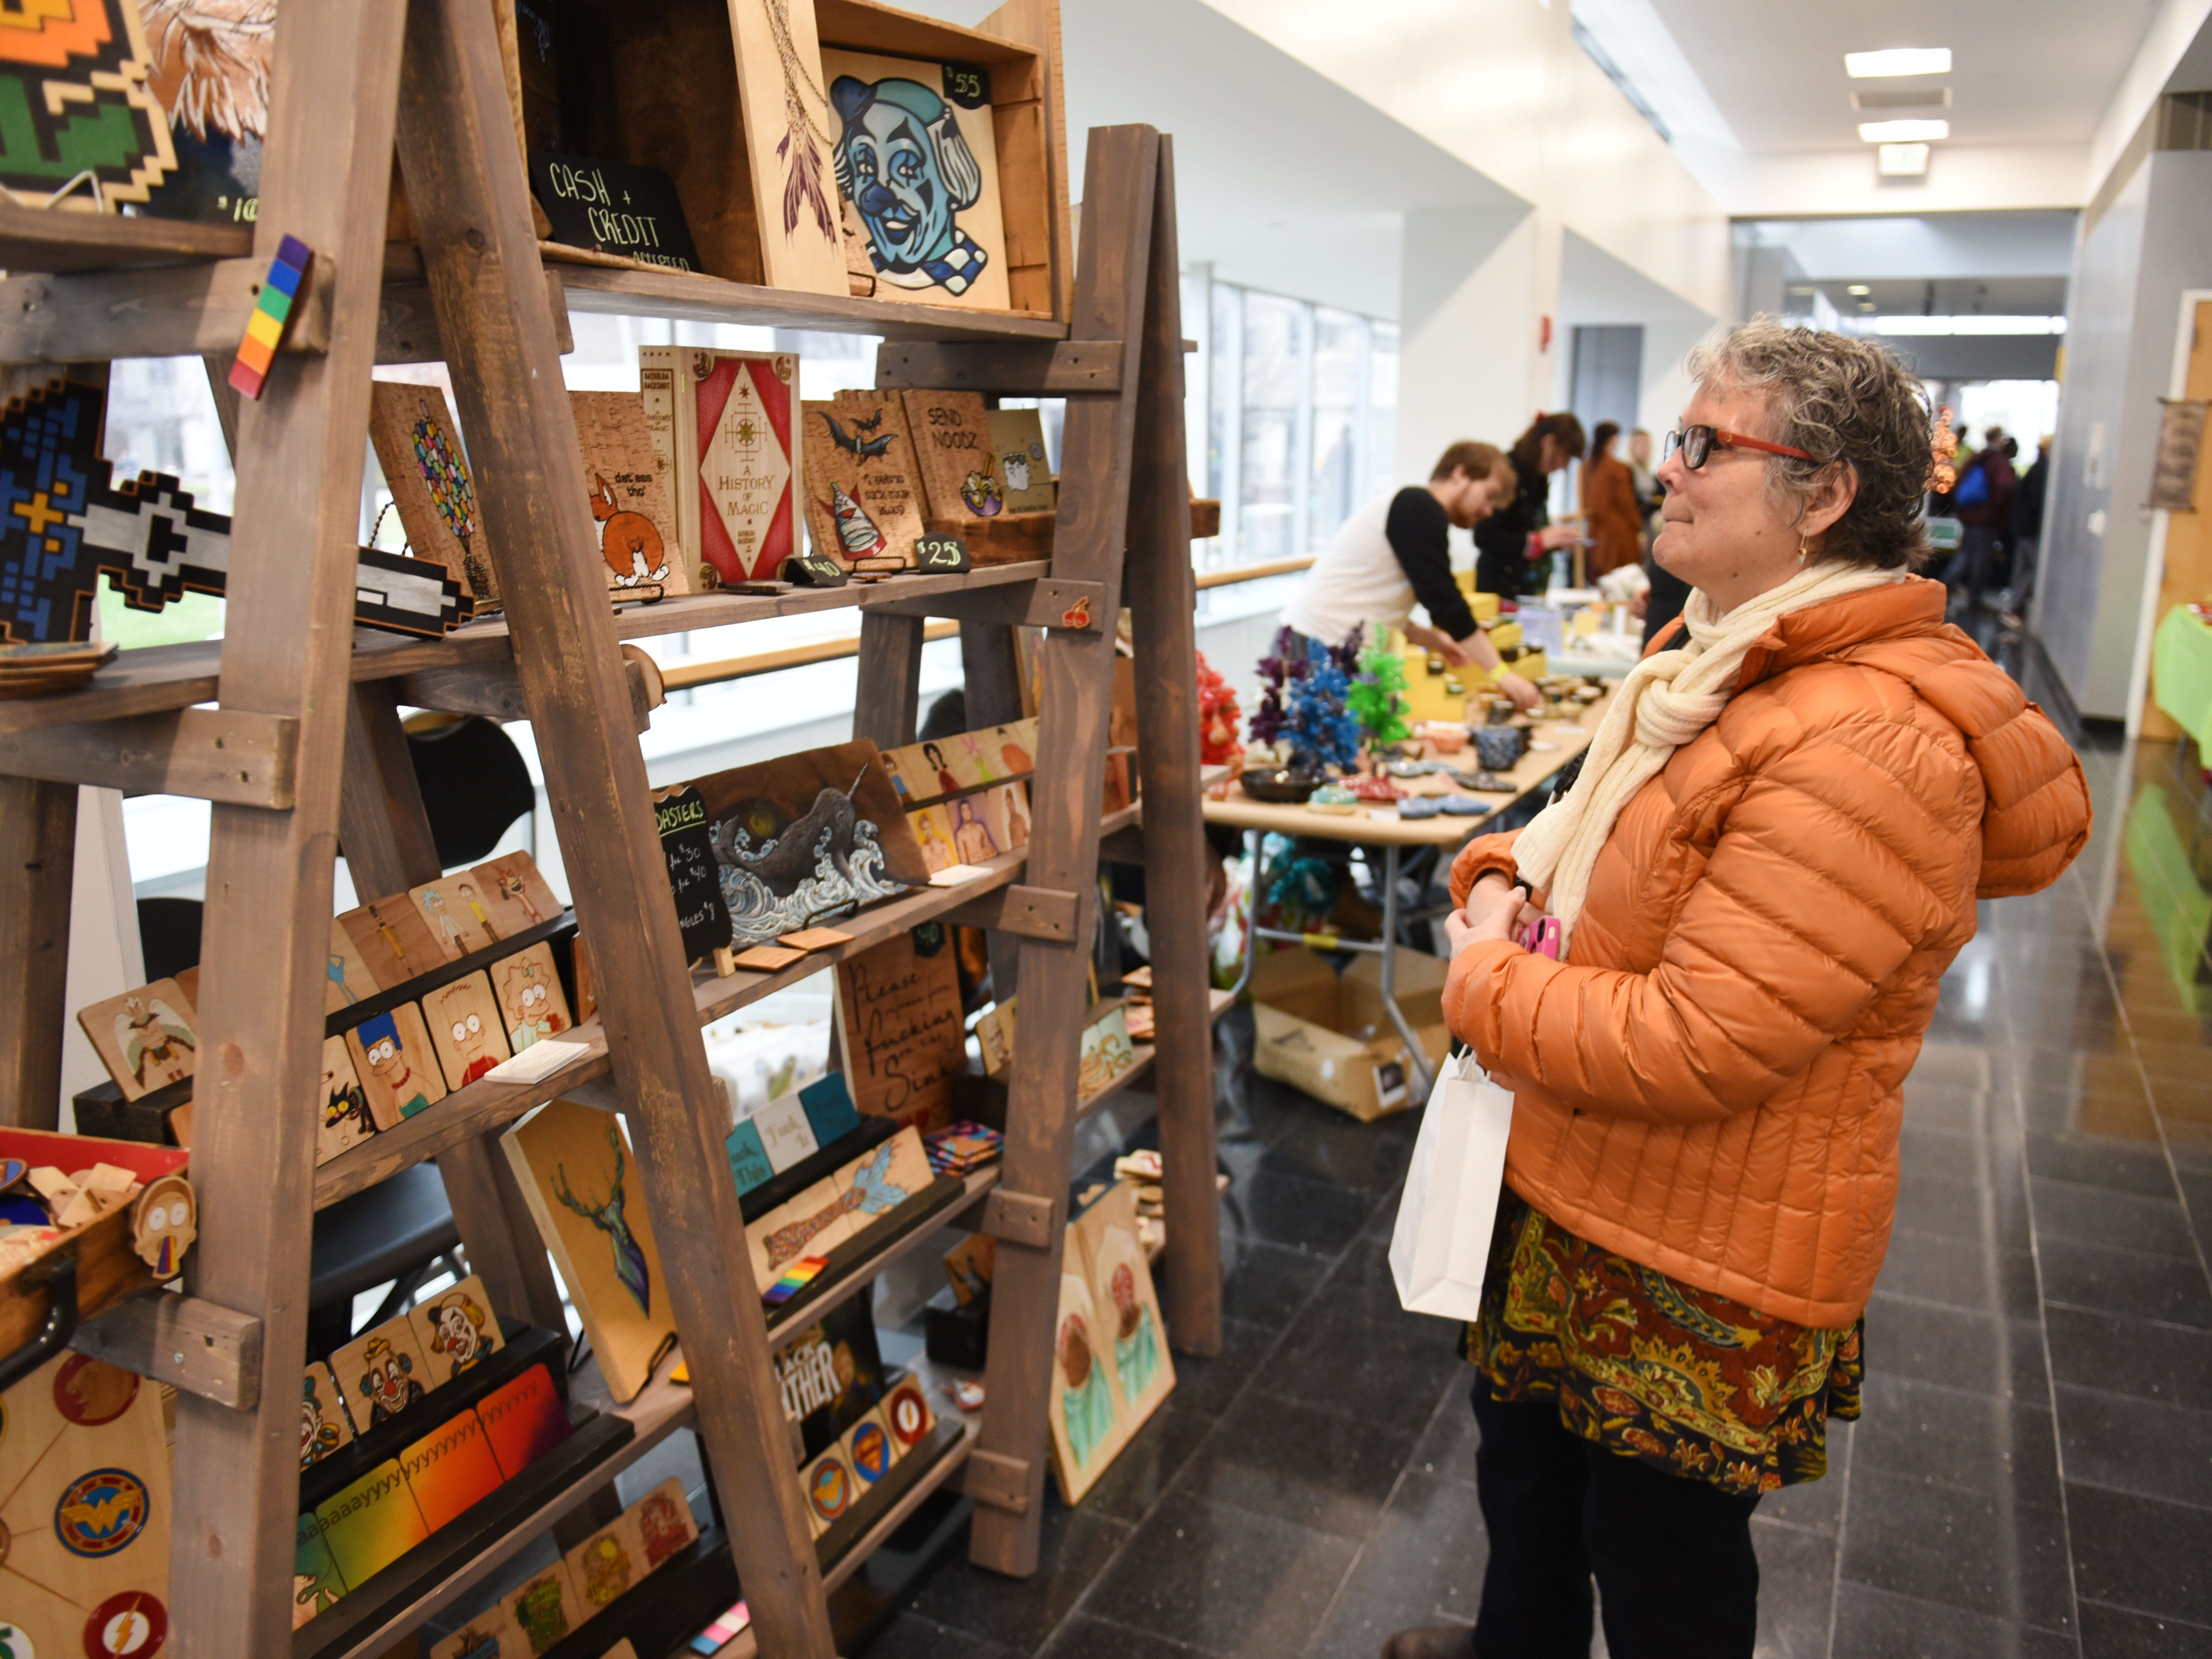 Judy Kales of Allen Park looks at the artwork of Jessica Rowland, of Pipperillo Studios, at the Annual Student Alumni Art Sale at the College of Creative Studies during Noel Night in Detroit on Saturday, December 1, 2018.